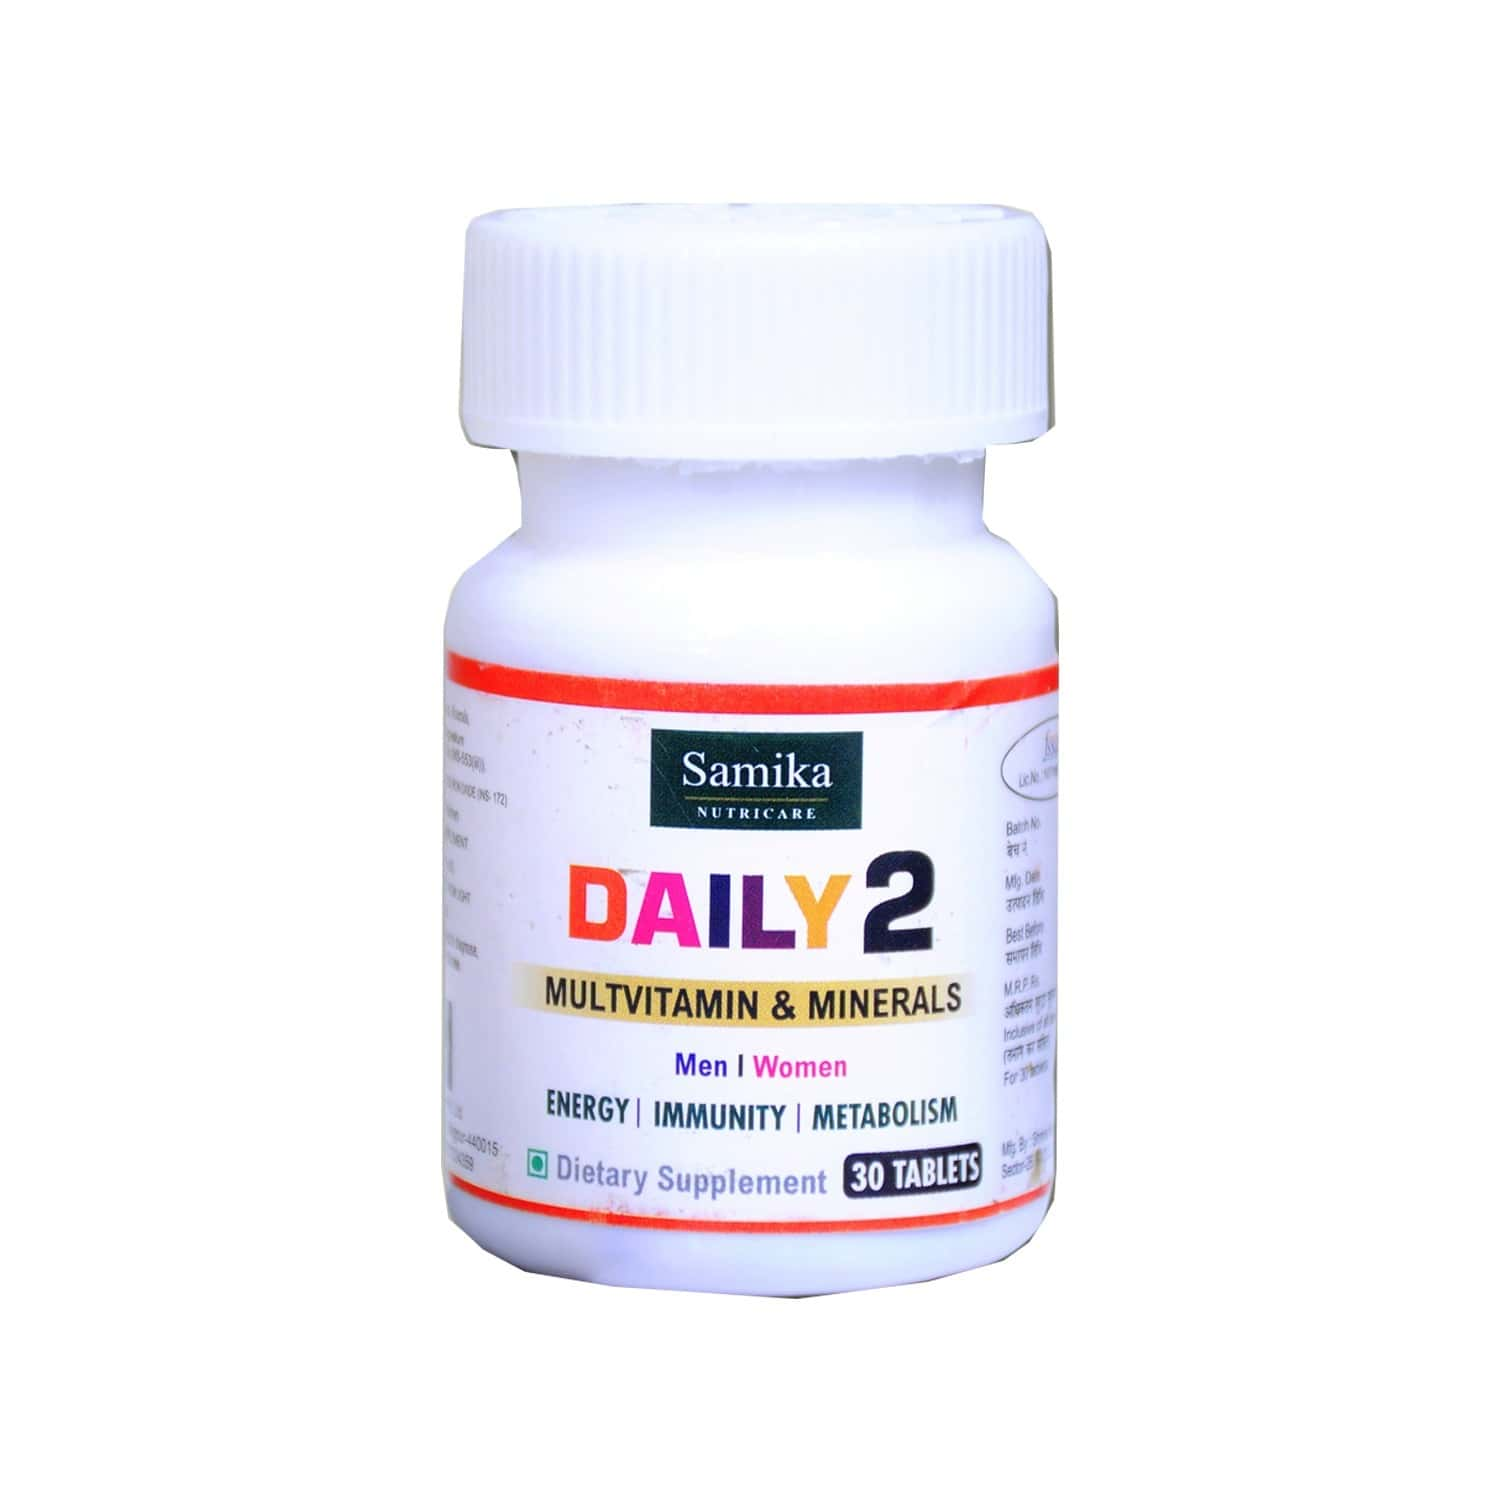 Samika Nutricare Daily 2 Multivitamin And Minerals - 30 Tablets